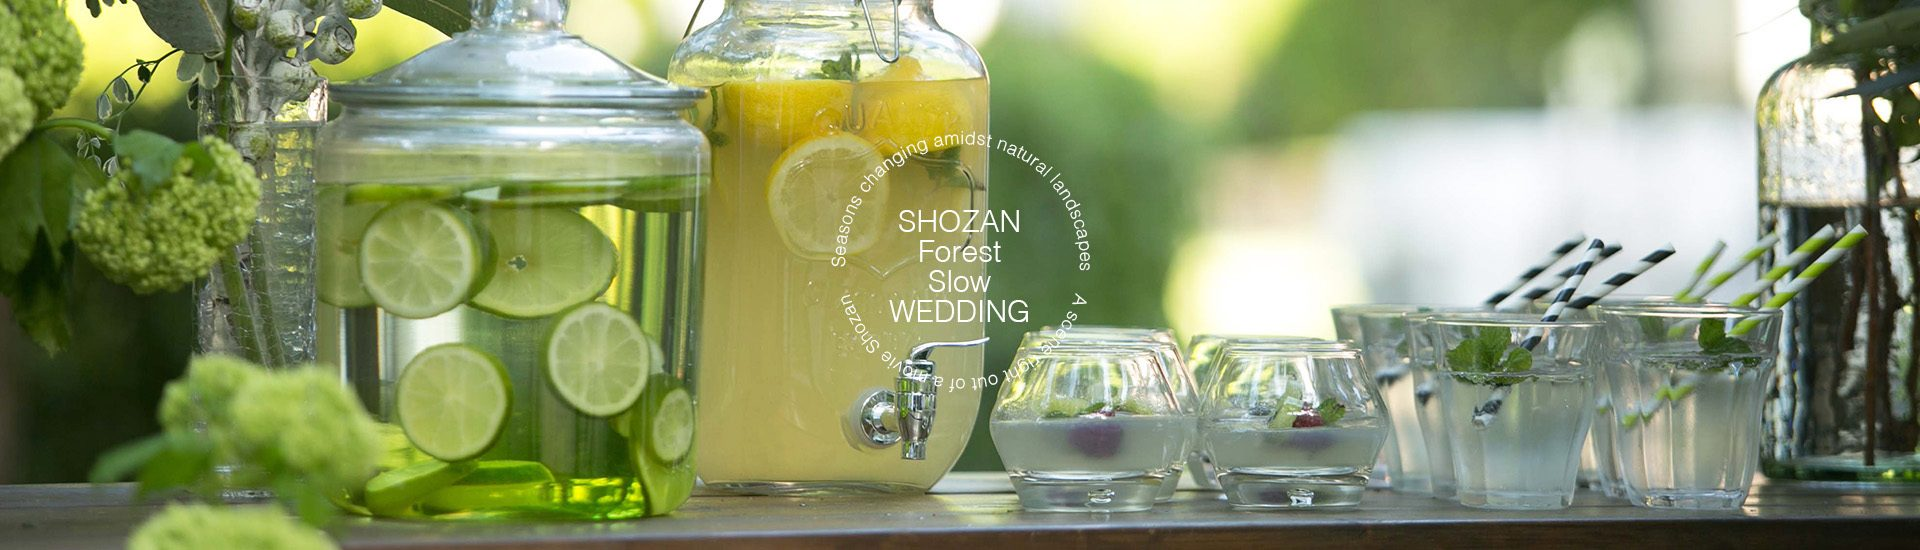 SHOZAN Forest Slow WEDDING